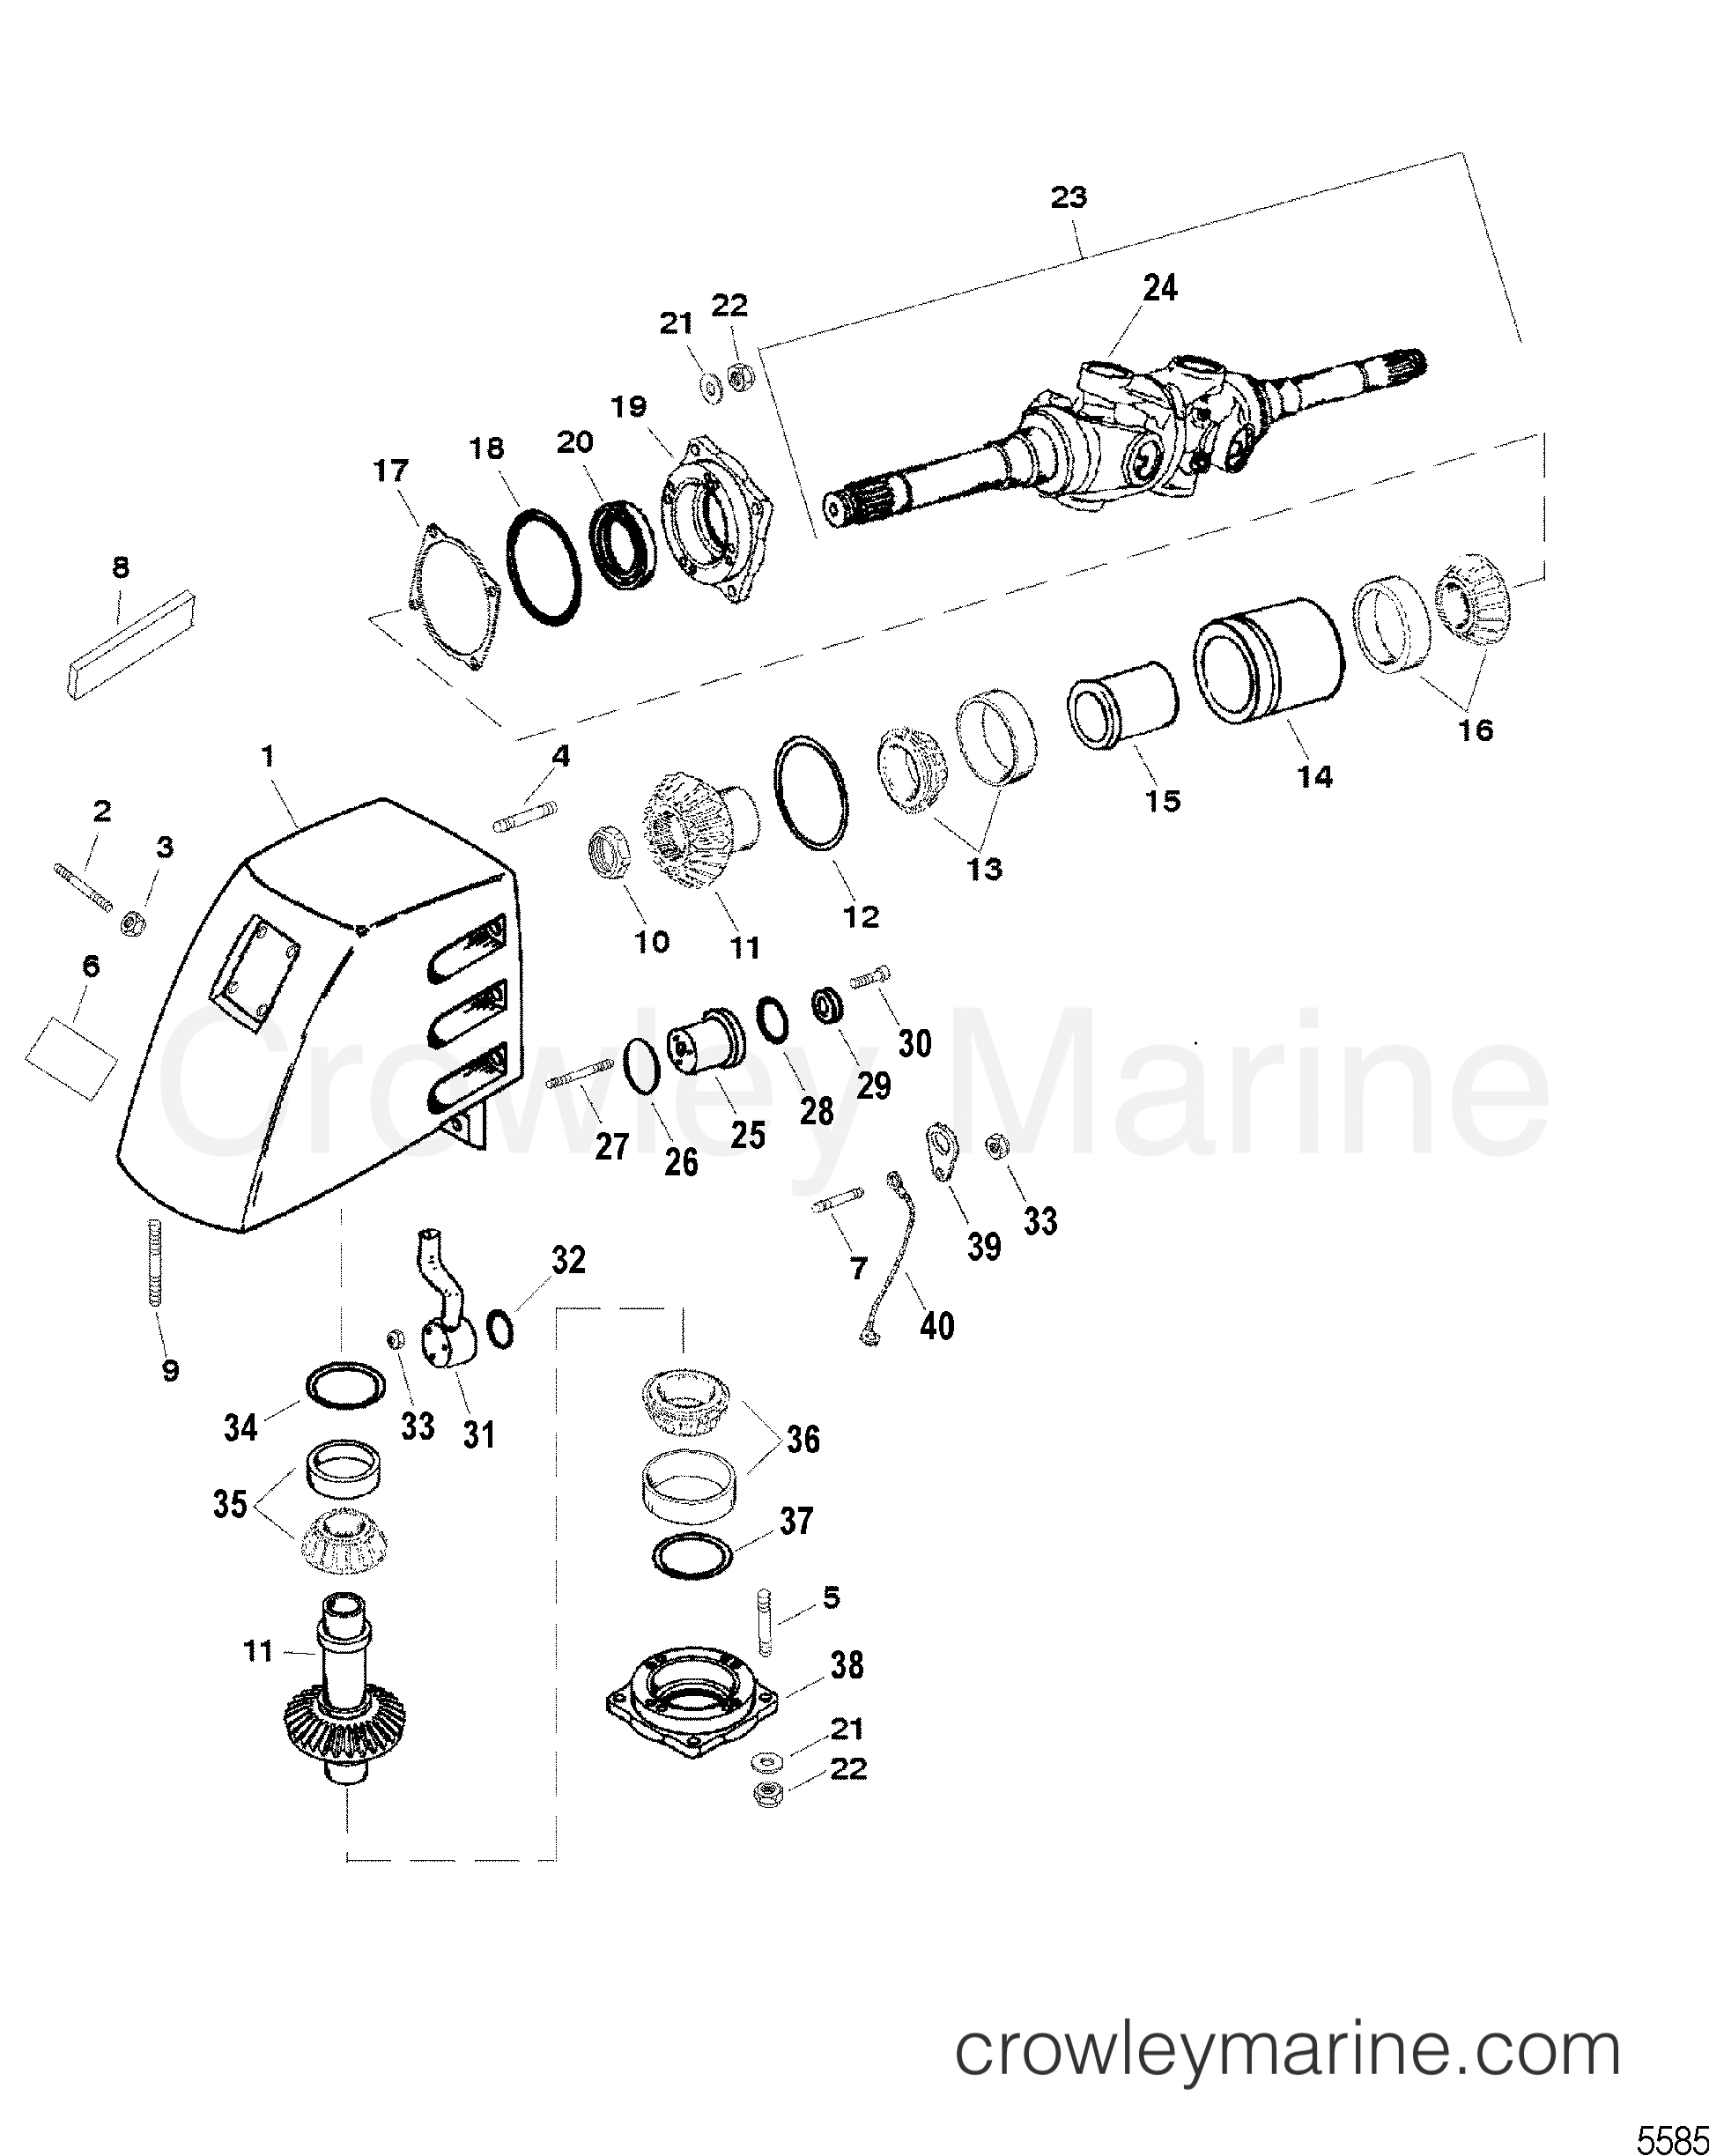 Serial Range Mercruiser Race Sterndrive SSM SIX - ALL & Up [USA] U JOINT HOUSING ASSEMBLY(SSM SIX - EARLY STYLE) section